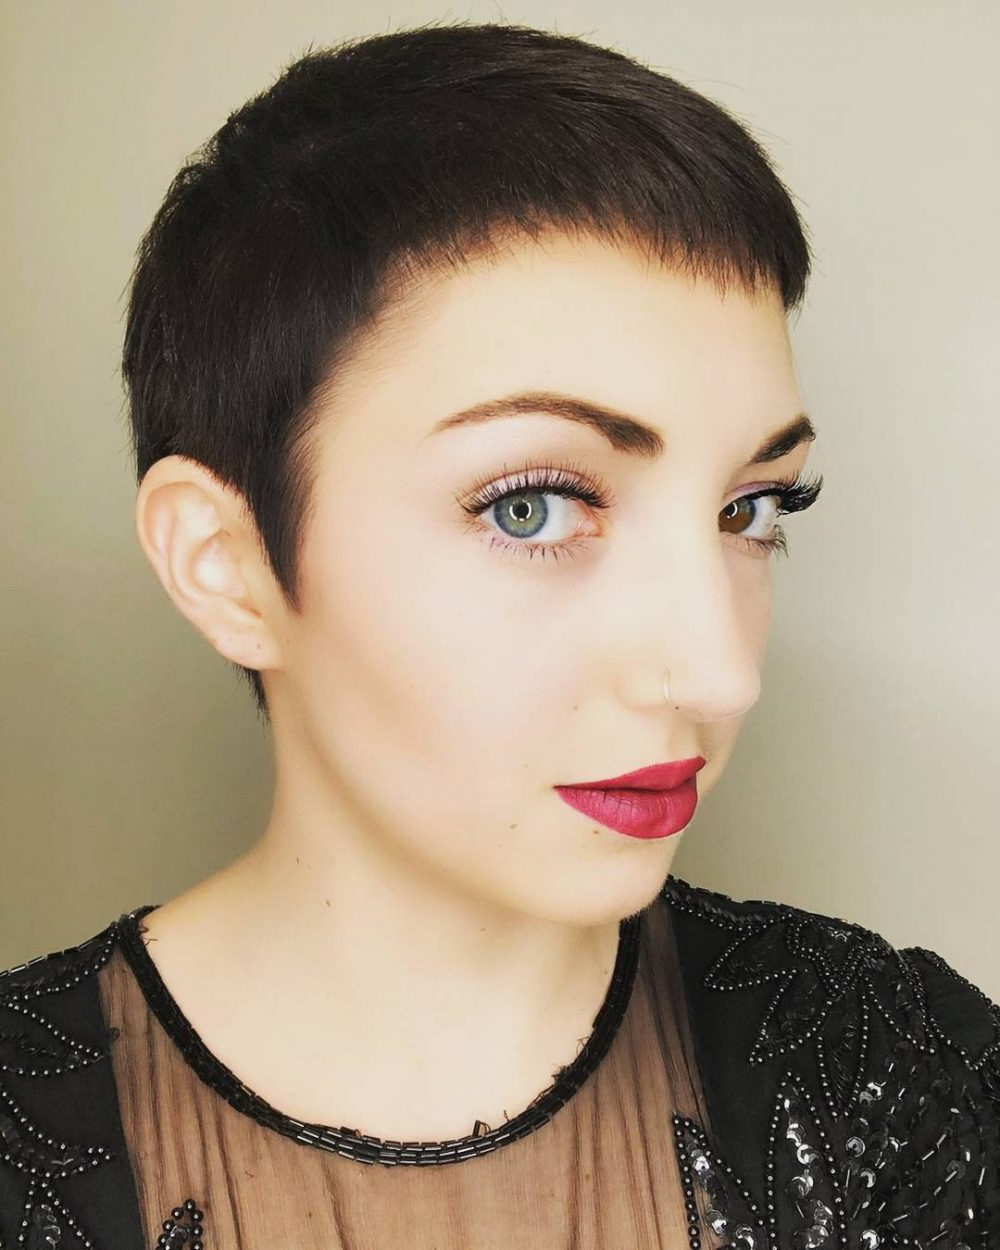 27 Very Short Haircuts You Have To See In 2018 Intended For Feminine Short Hairstyles For Women (View 12 of 25)